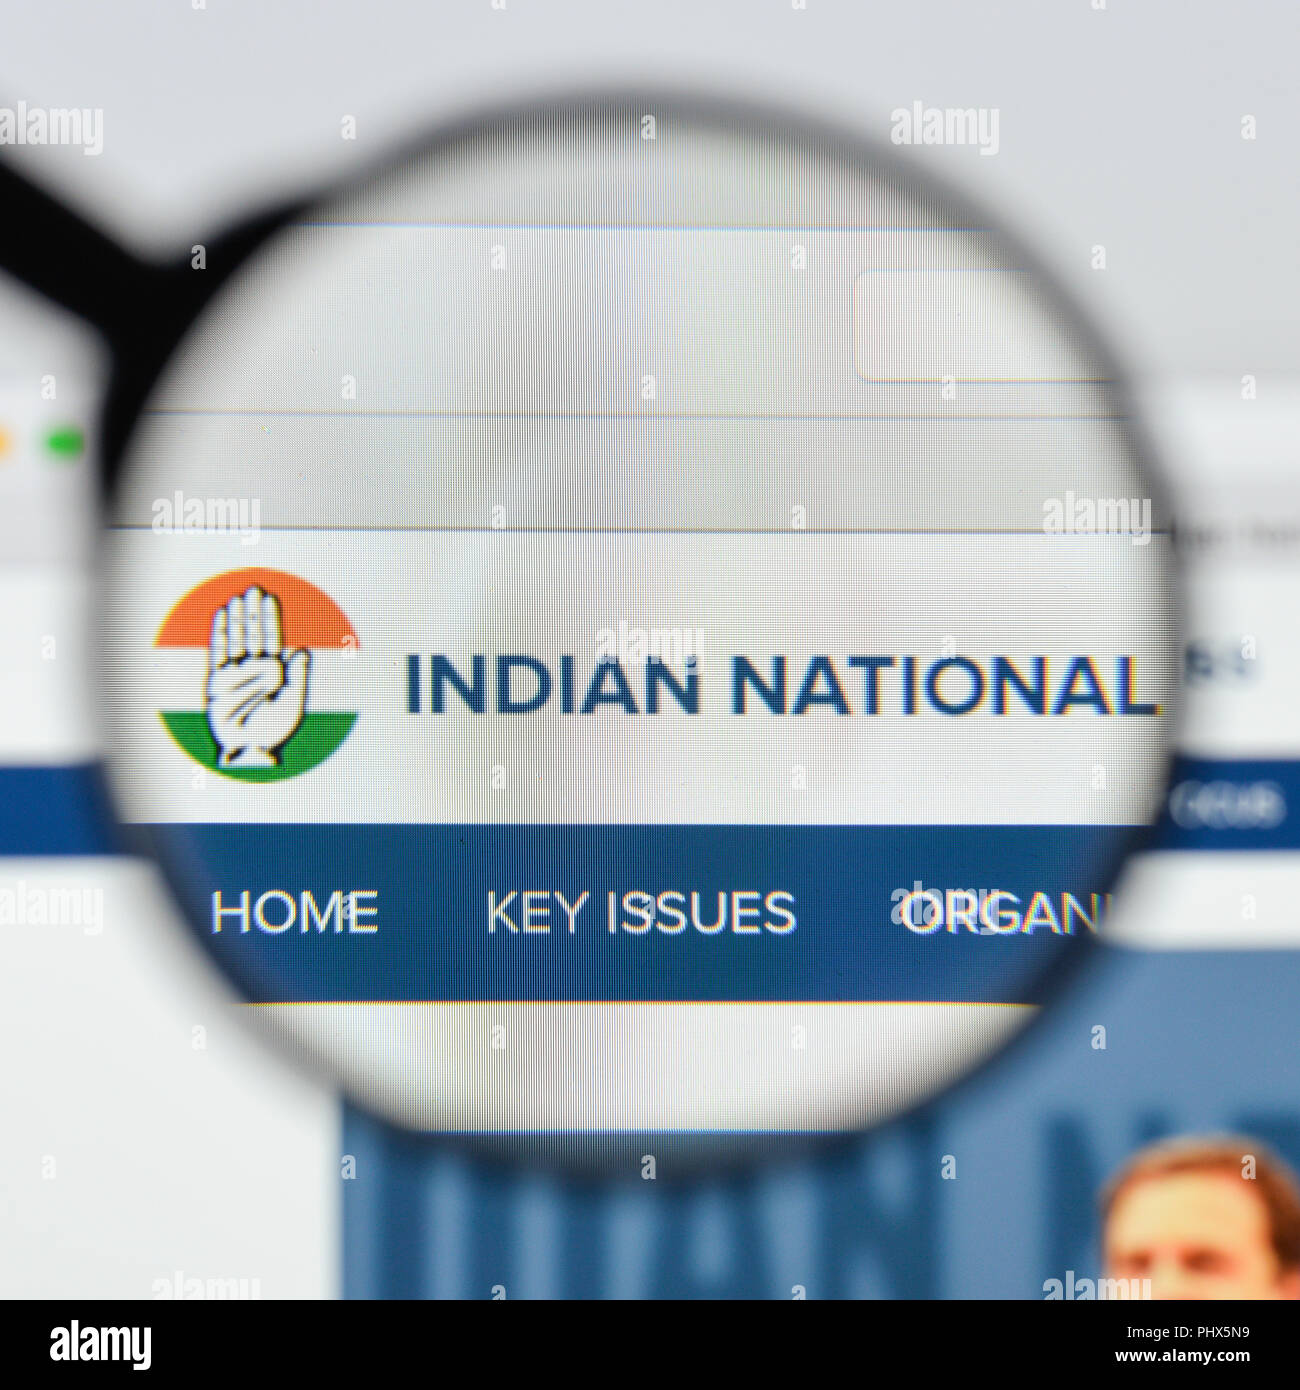 Milan, Italy - August 20, 2018: Indian National Congress website homepage. Indian National Congress logo visible. - Stock Image